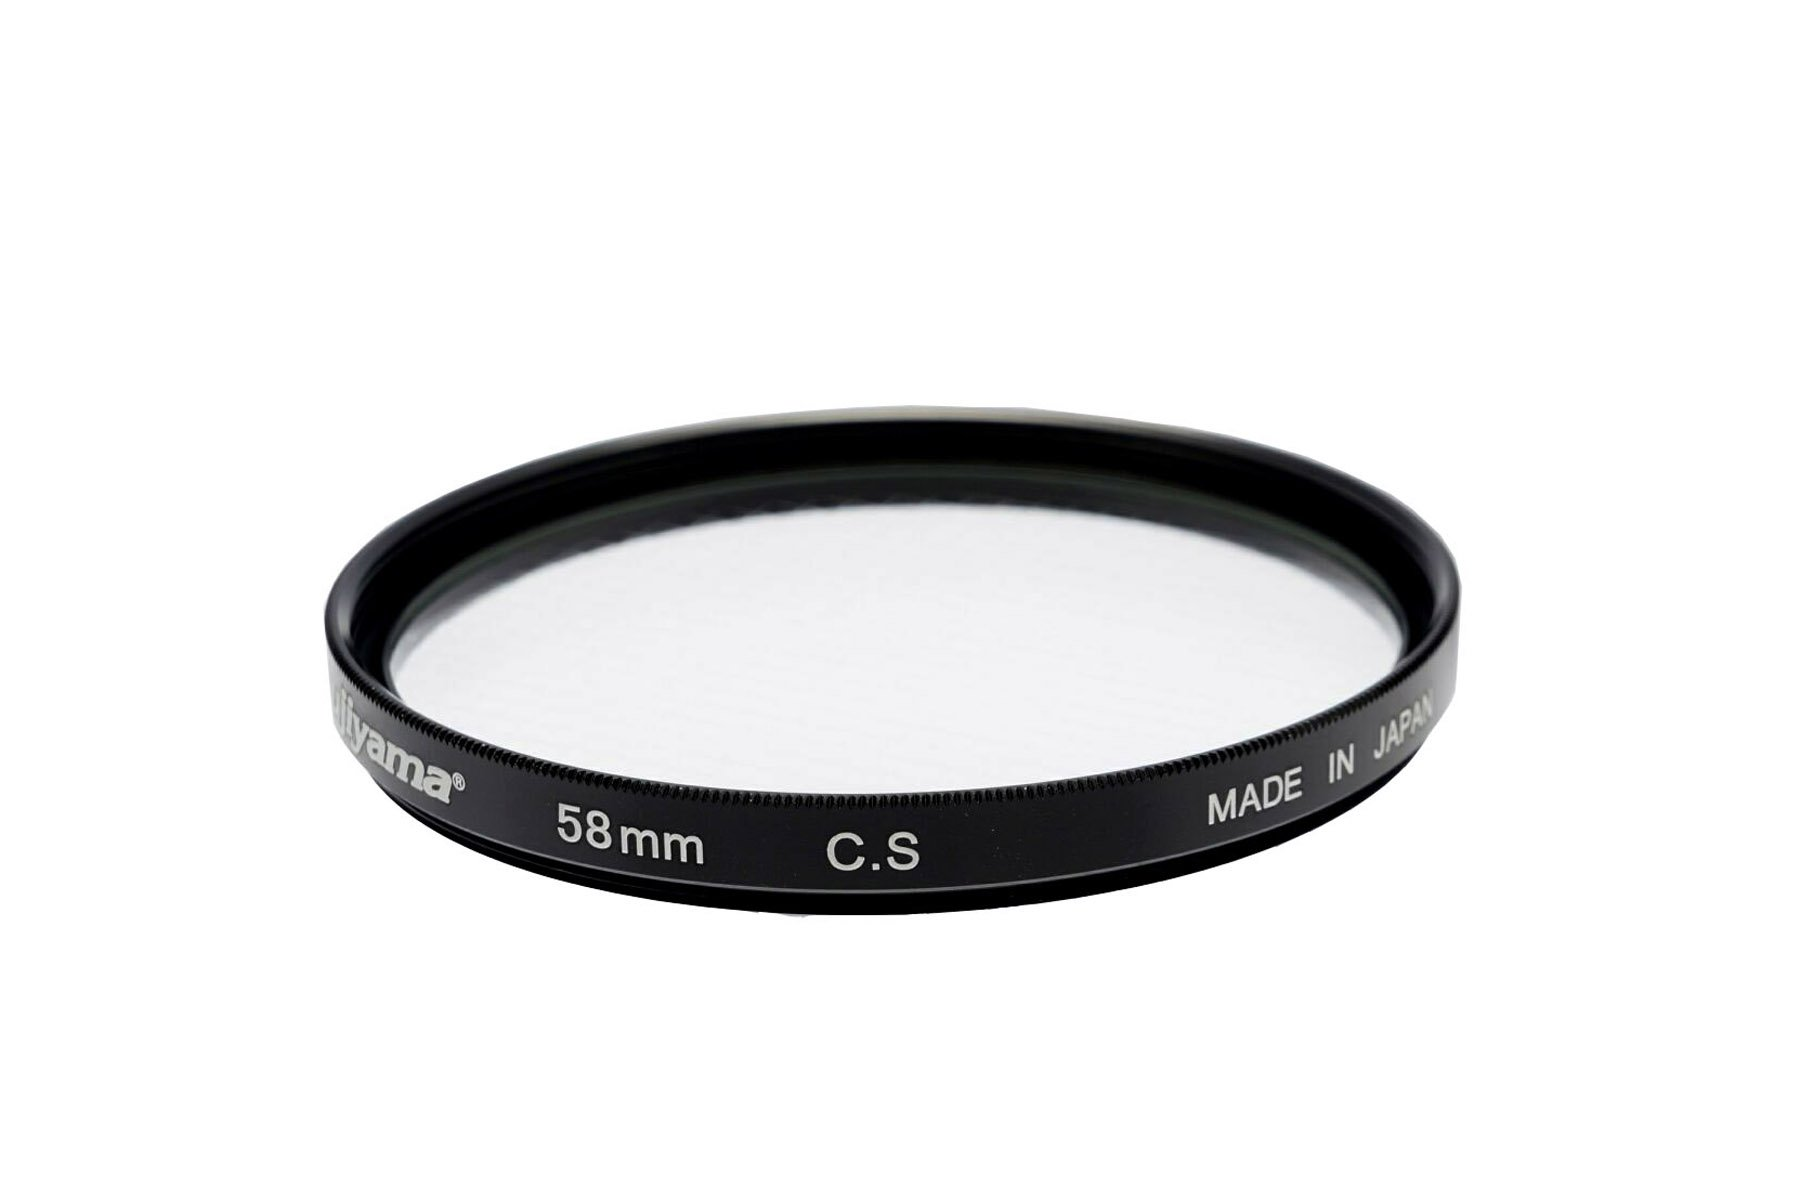 Fujiyama 58mm Cross Screen Filter Made in Japan for Nikon AF-S Nikkor 50mm f/1.8G 50mm f/1.4G by Fujiyama